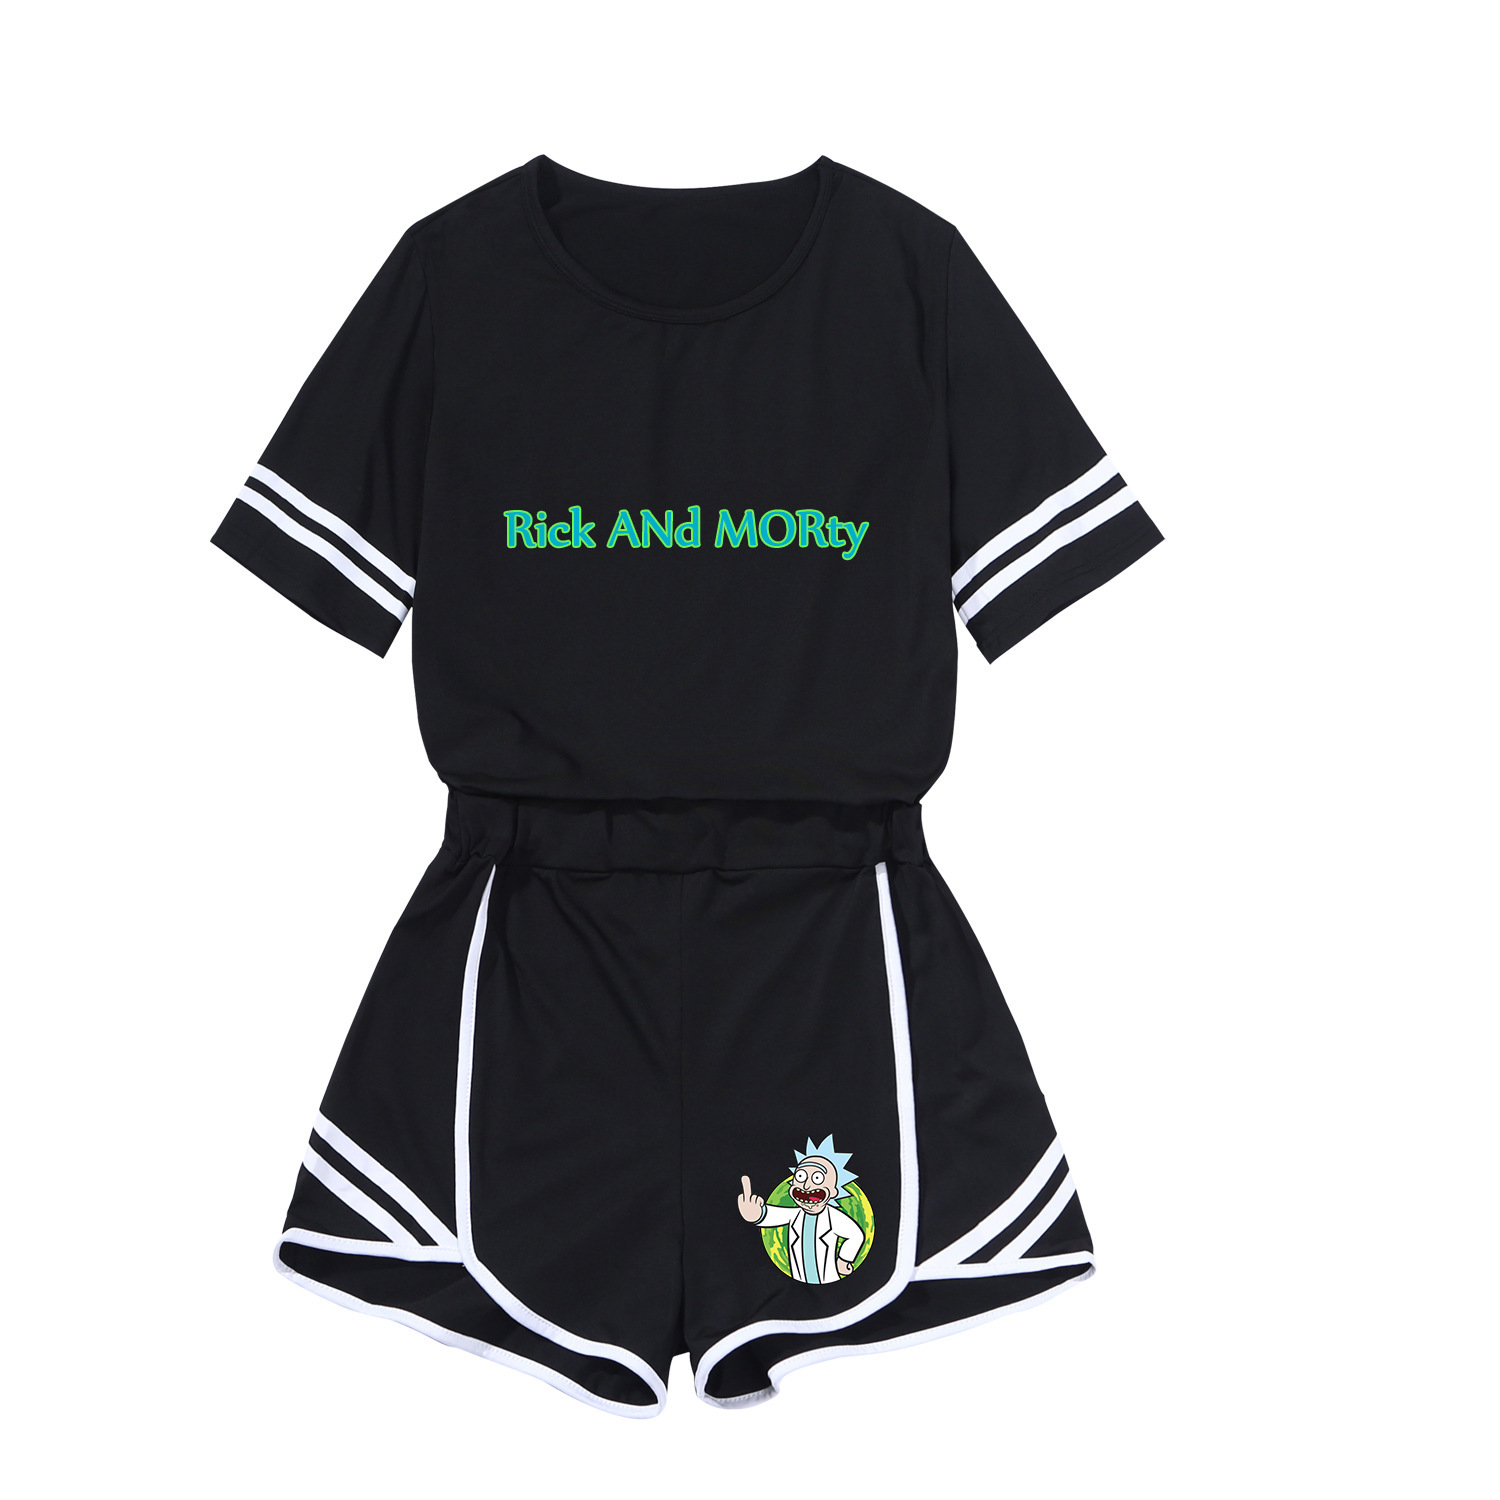 Rick And Morty2020 Spring Leisure Suit Rick And Morty Printed Short Skirt Sportswear-